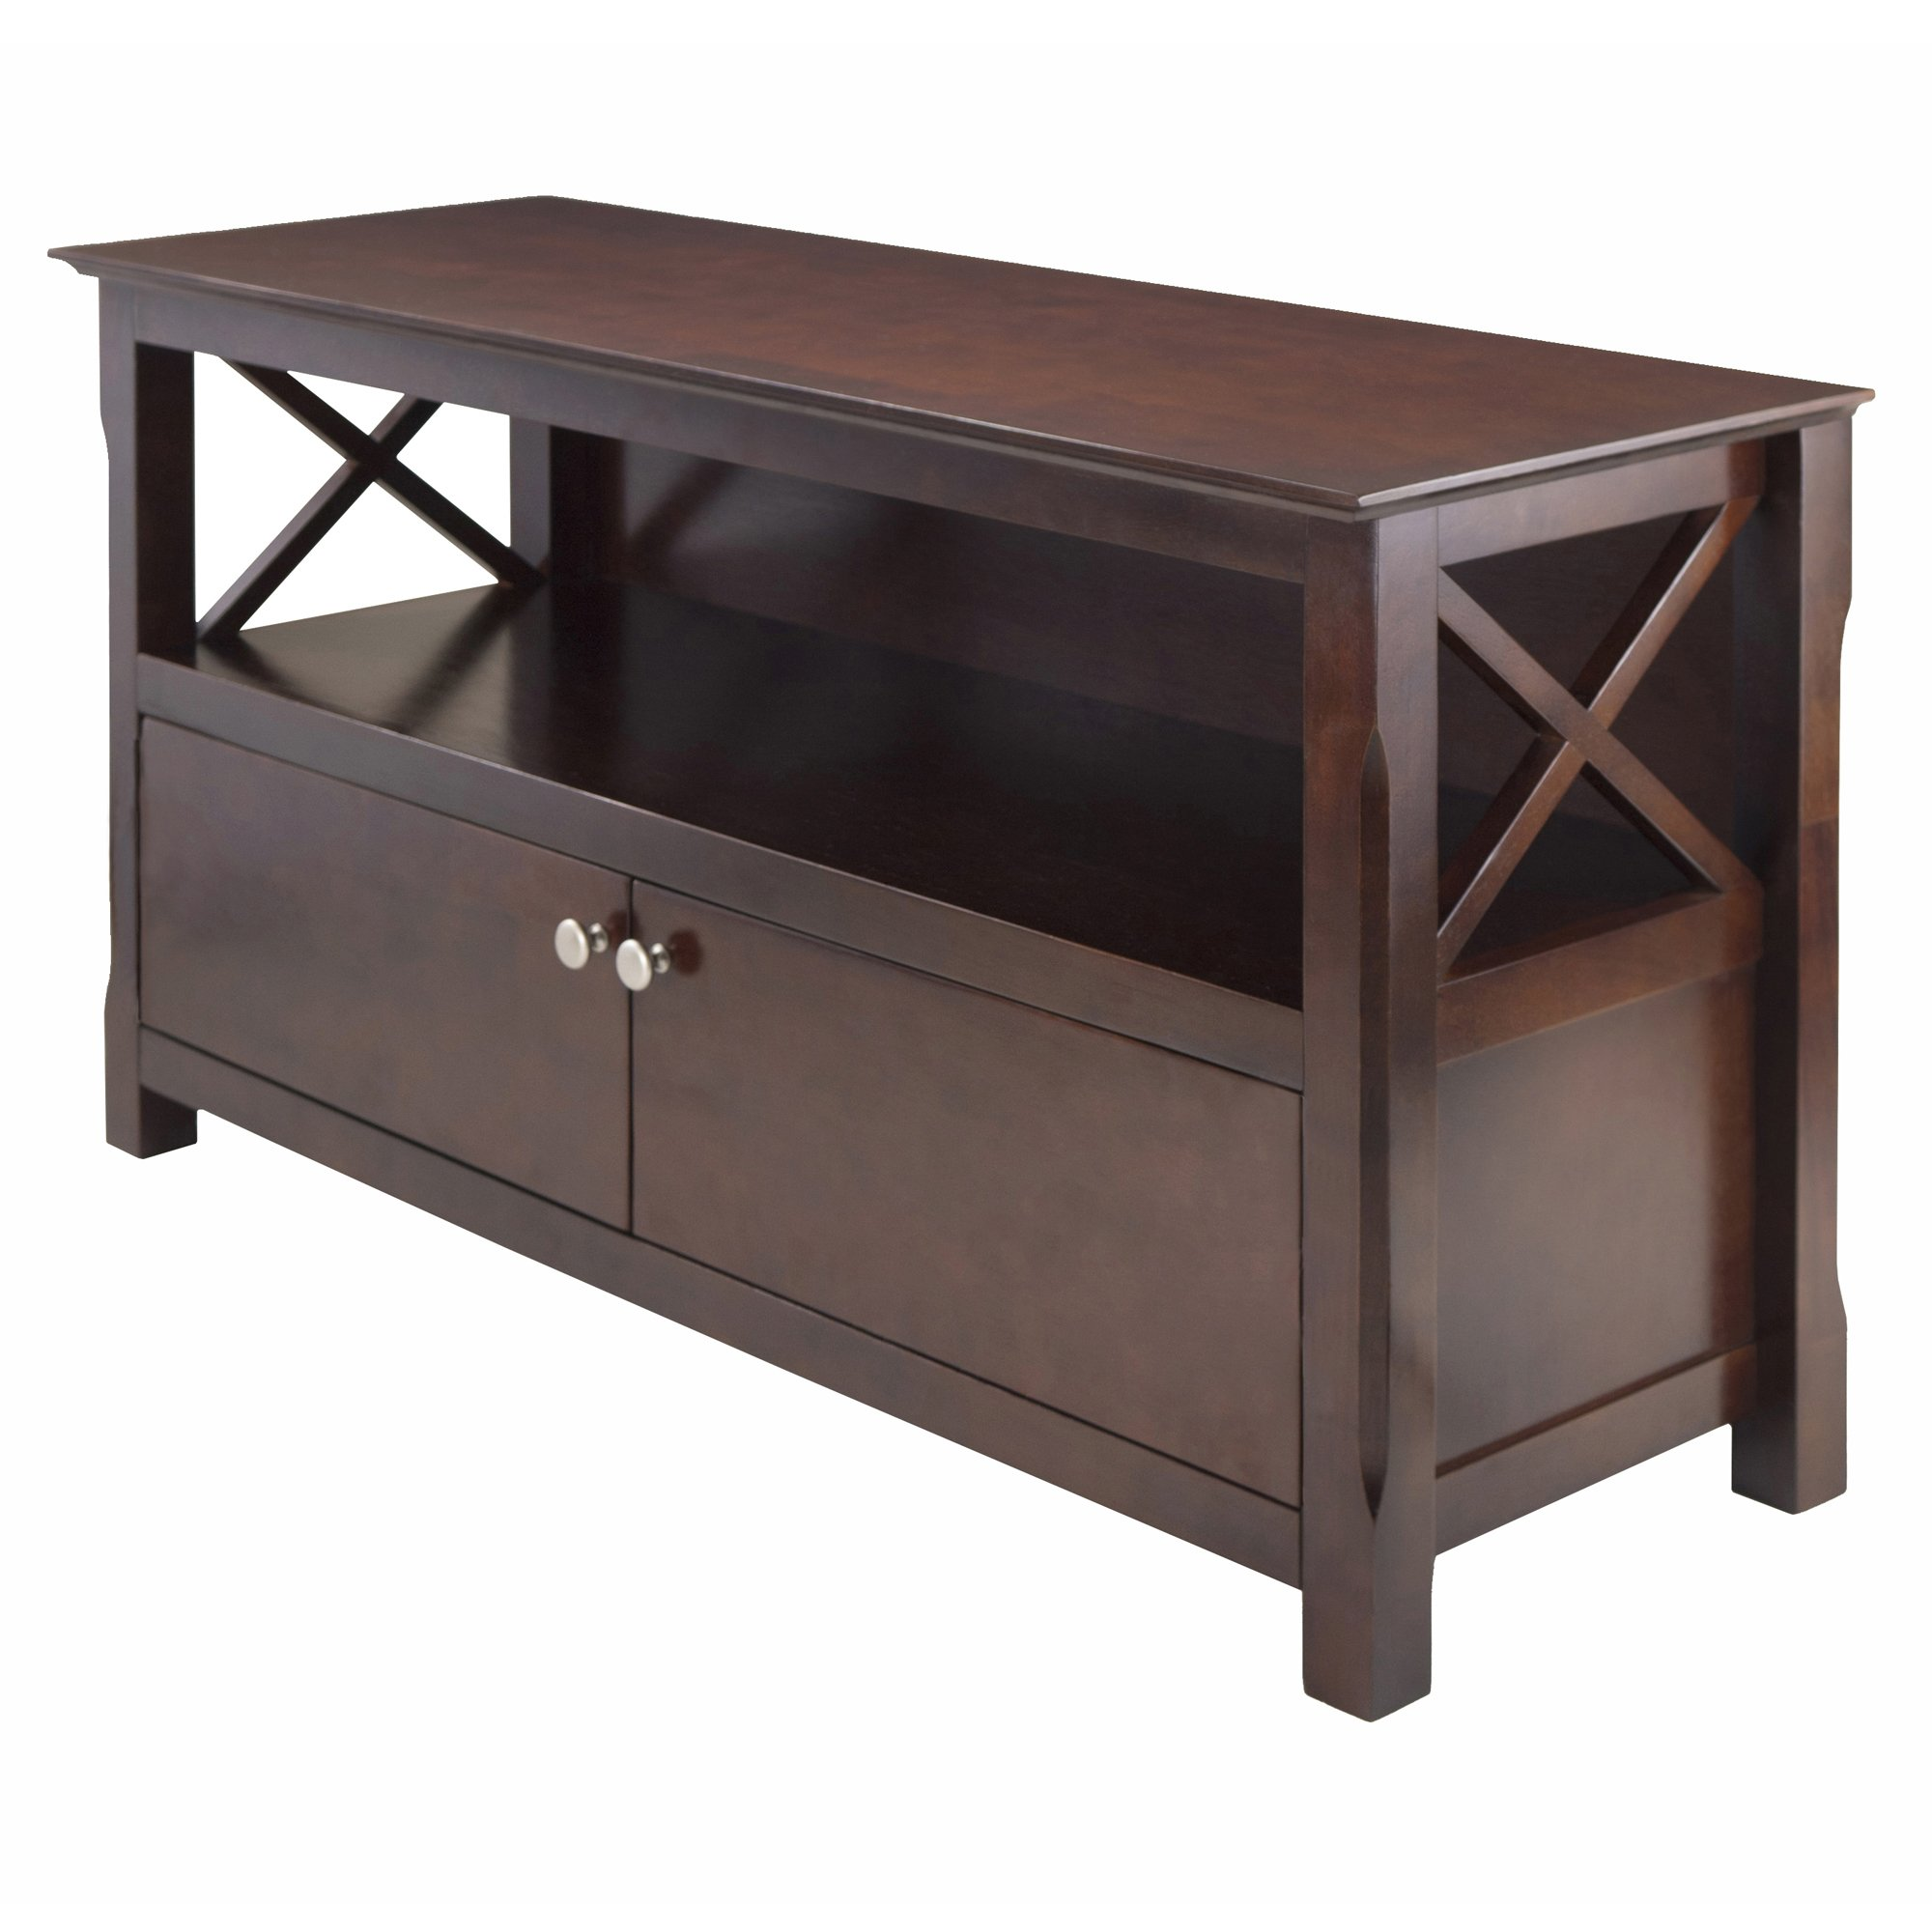 Winsome Wood Xola TV Stand by Winsome Wood